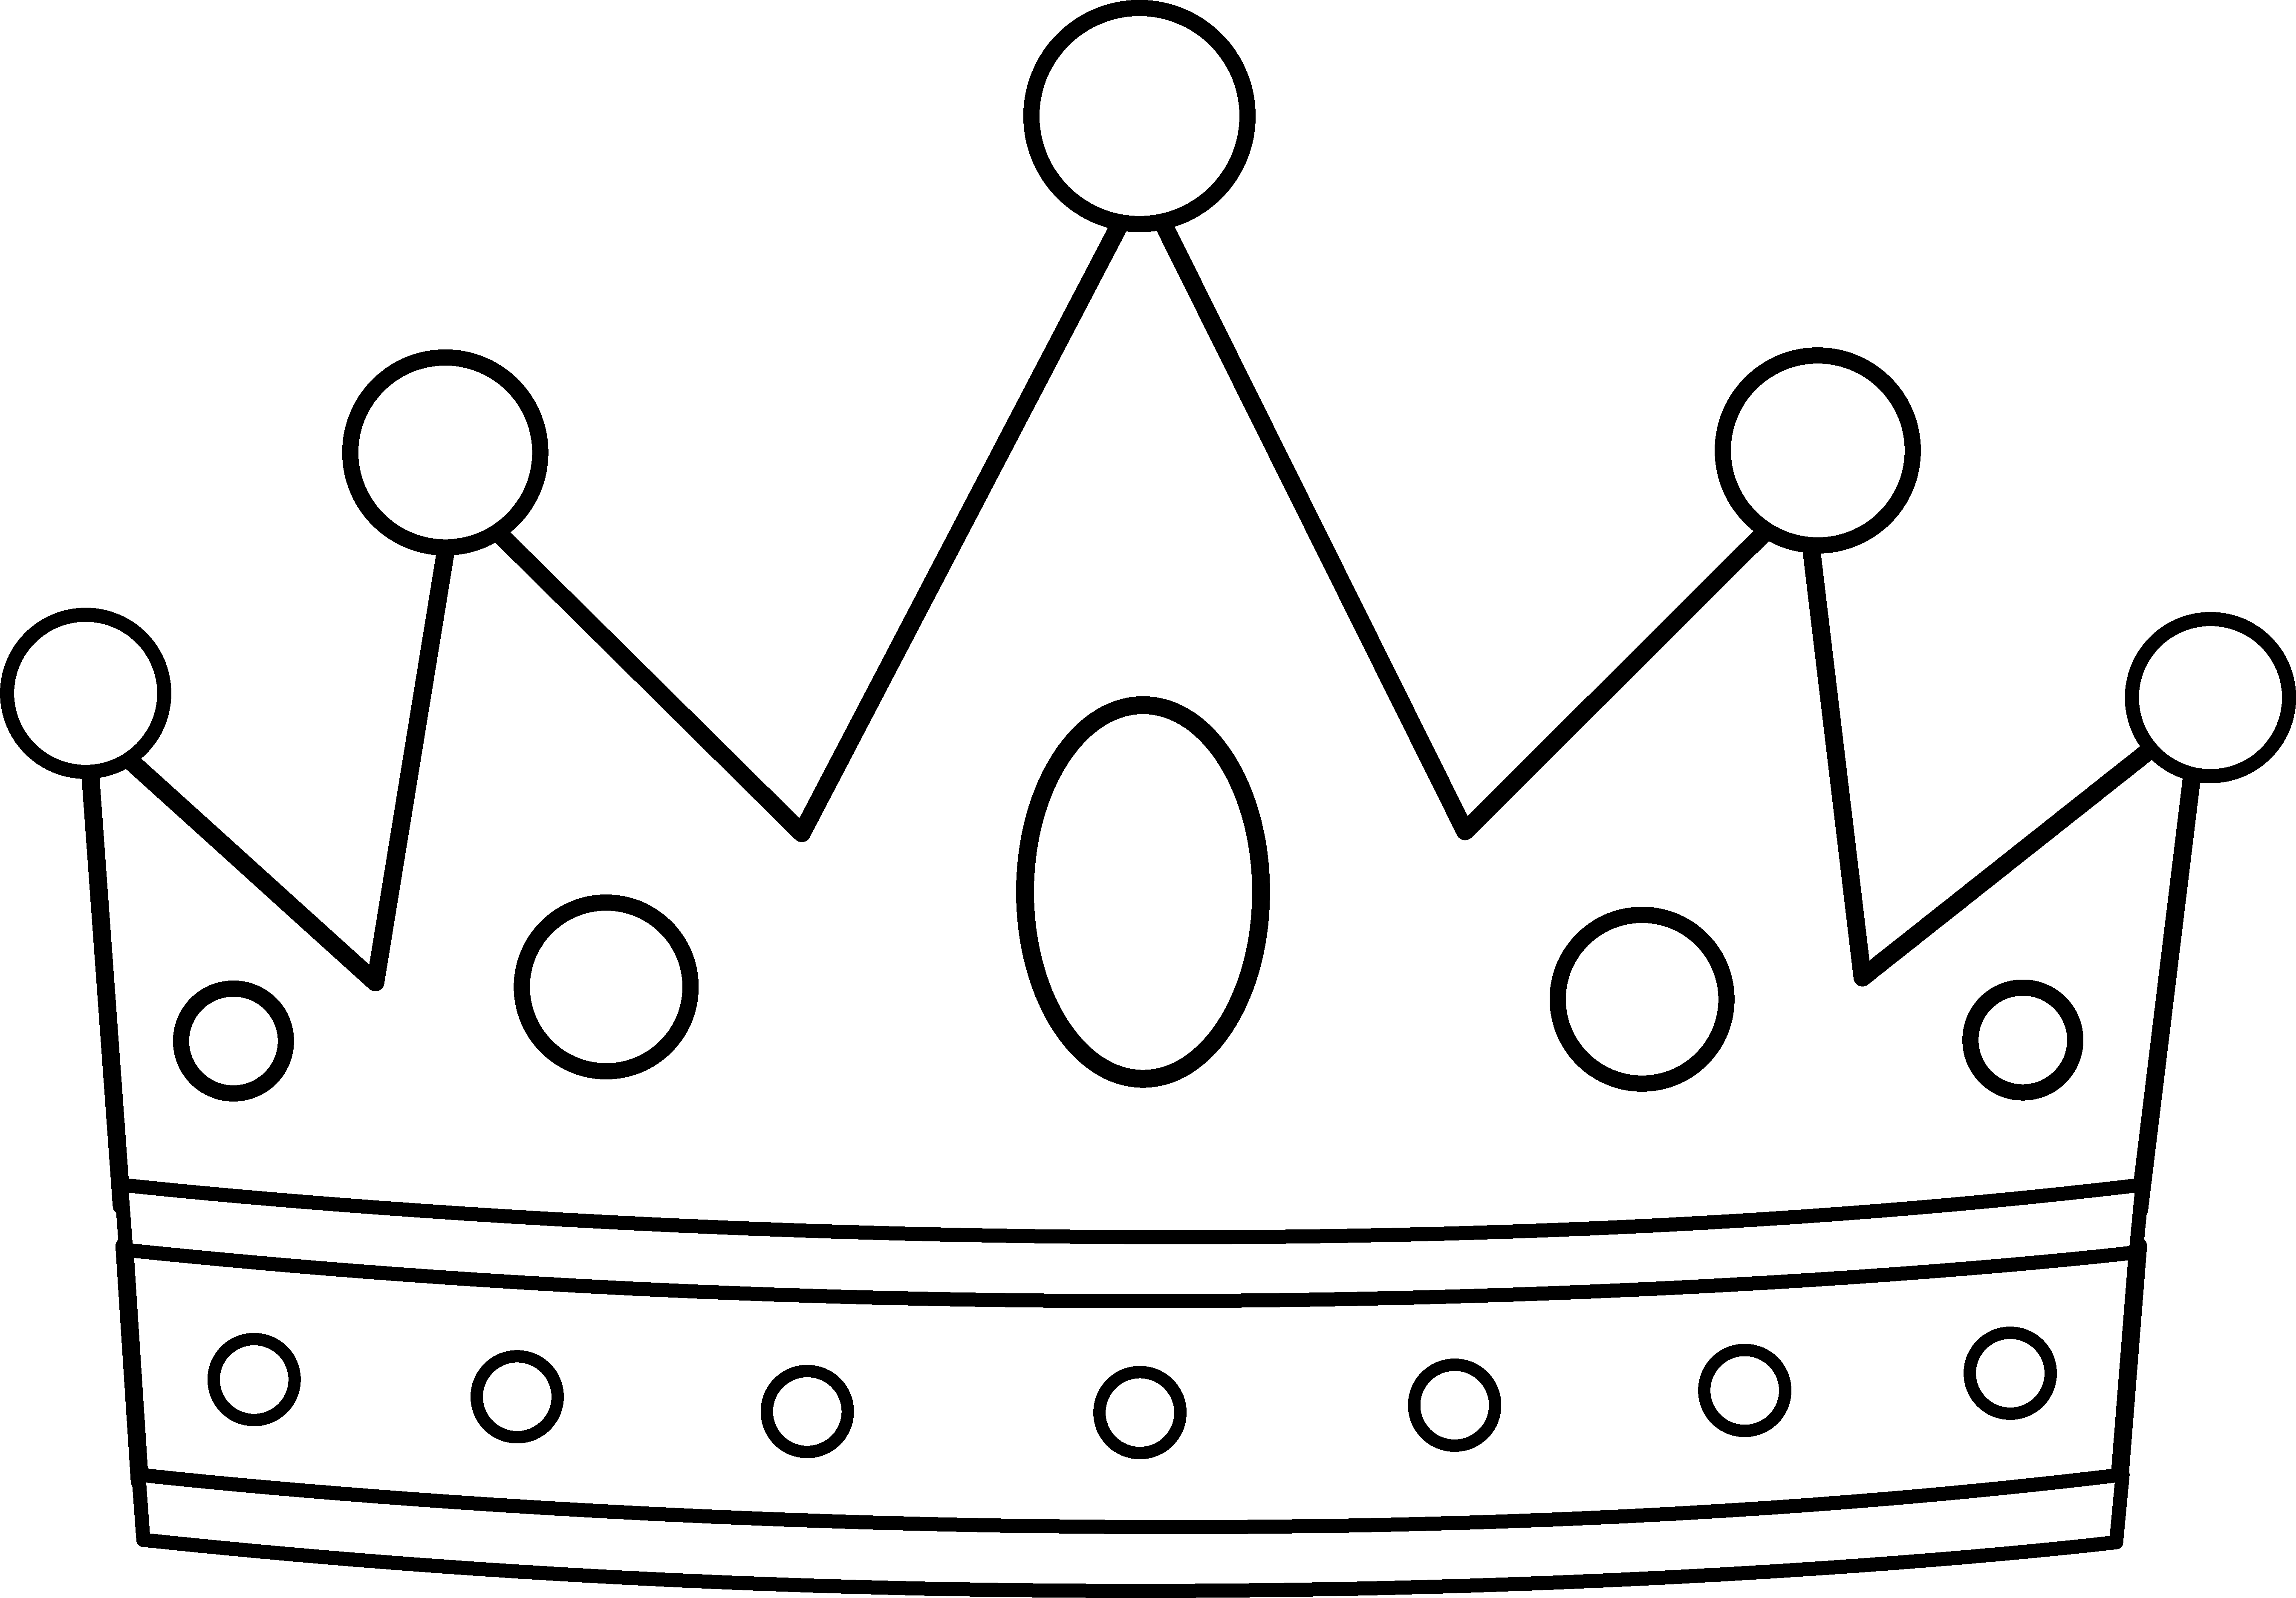 Crown clipart black background Clip and white King black